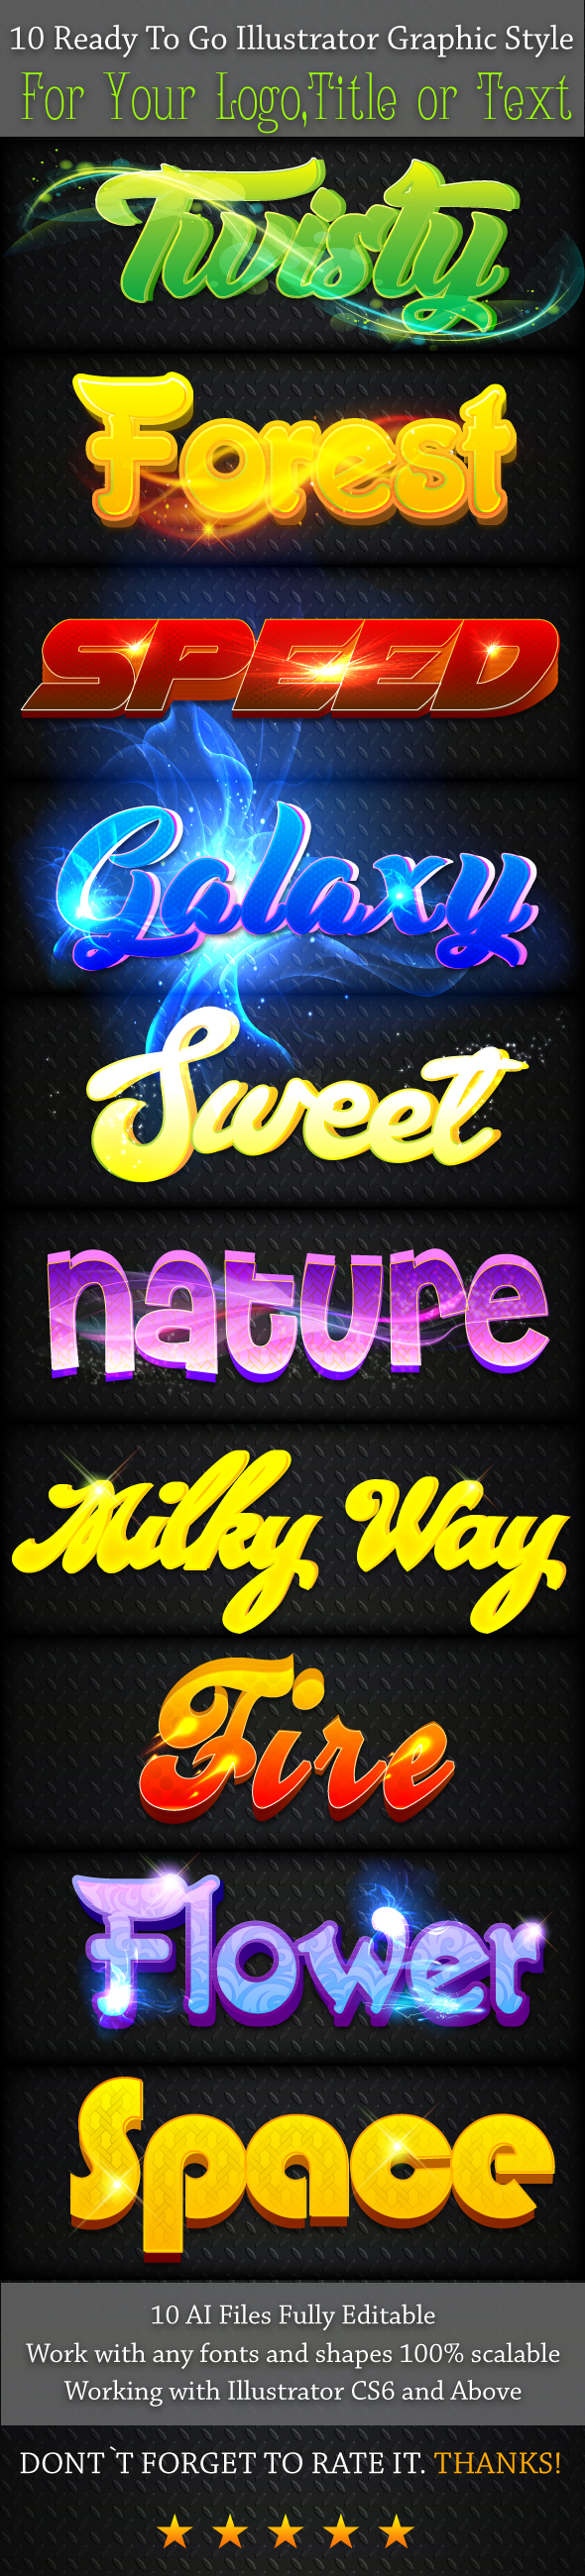 10 Font Illustrator Graphic Styles - Text Effects Actions